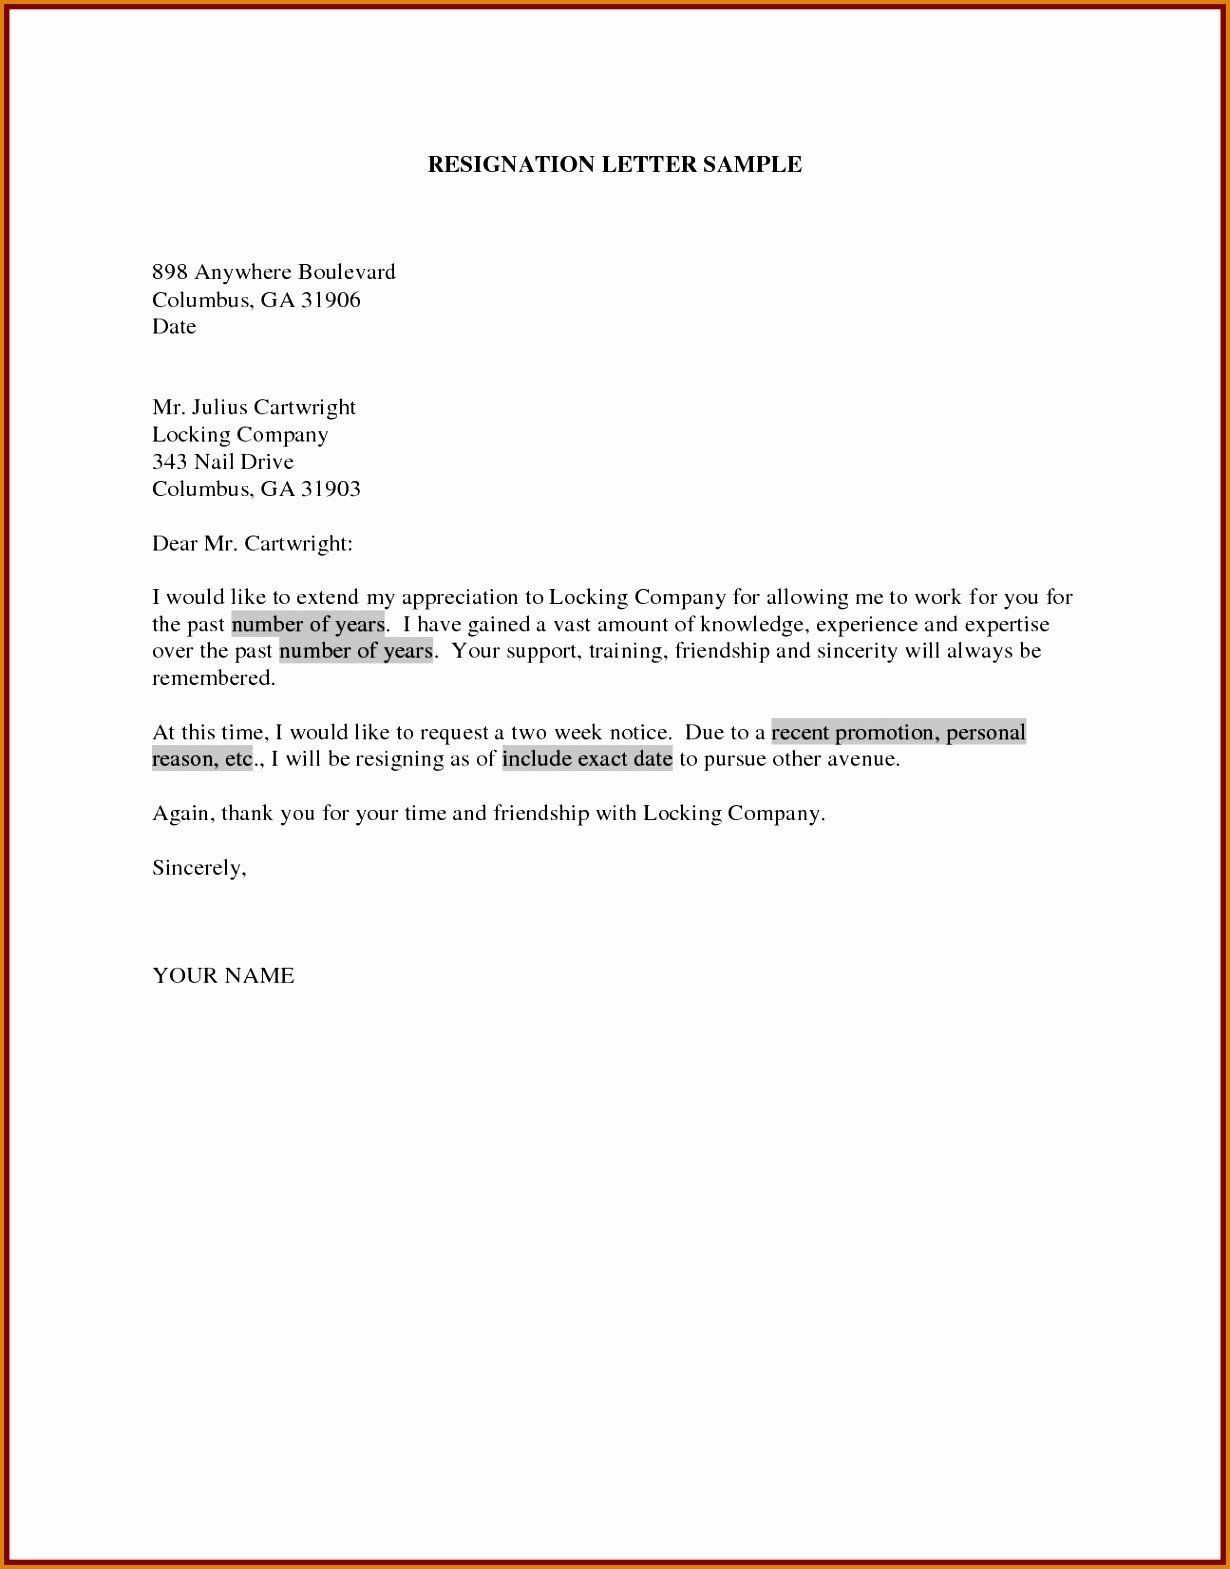 Formal Resignation Letter Template - Sample Resignation Letter Template Doc Copy Samples Resignation